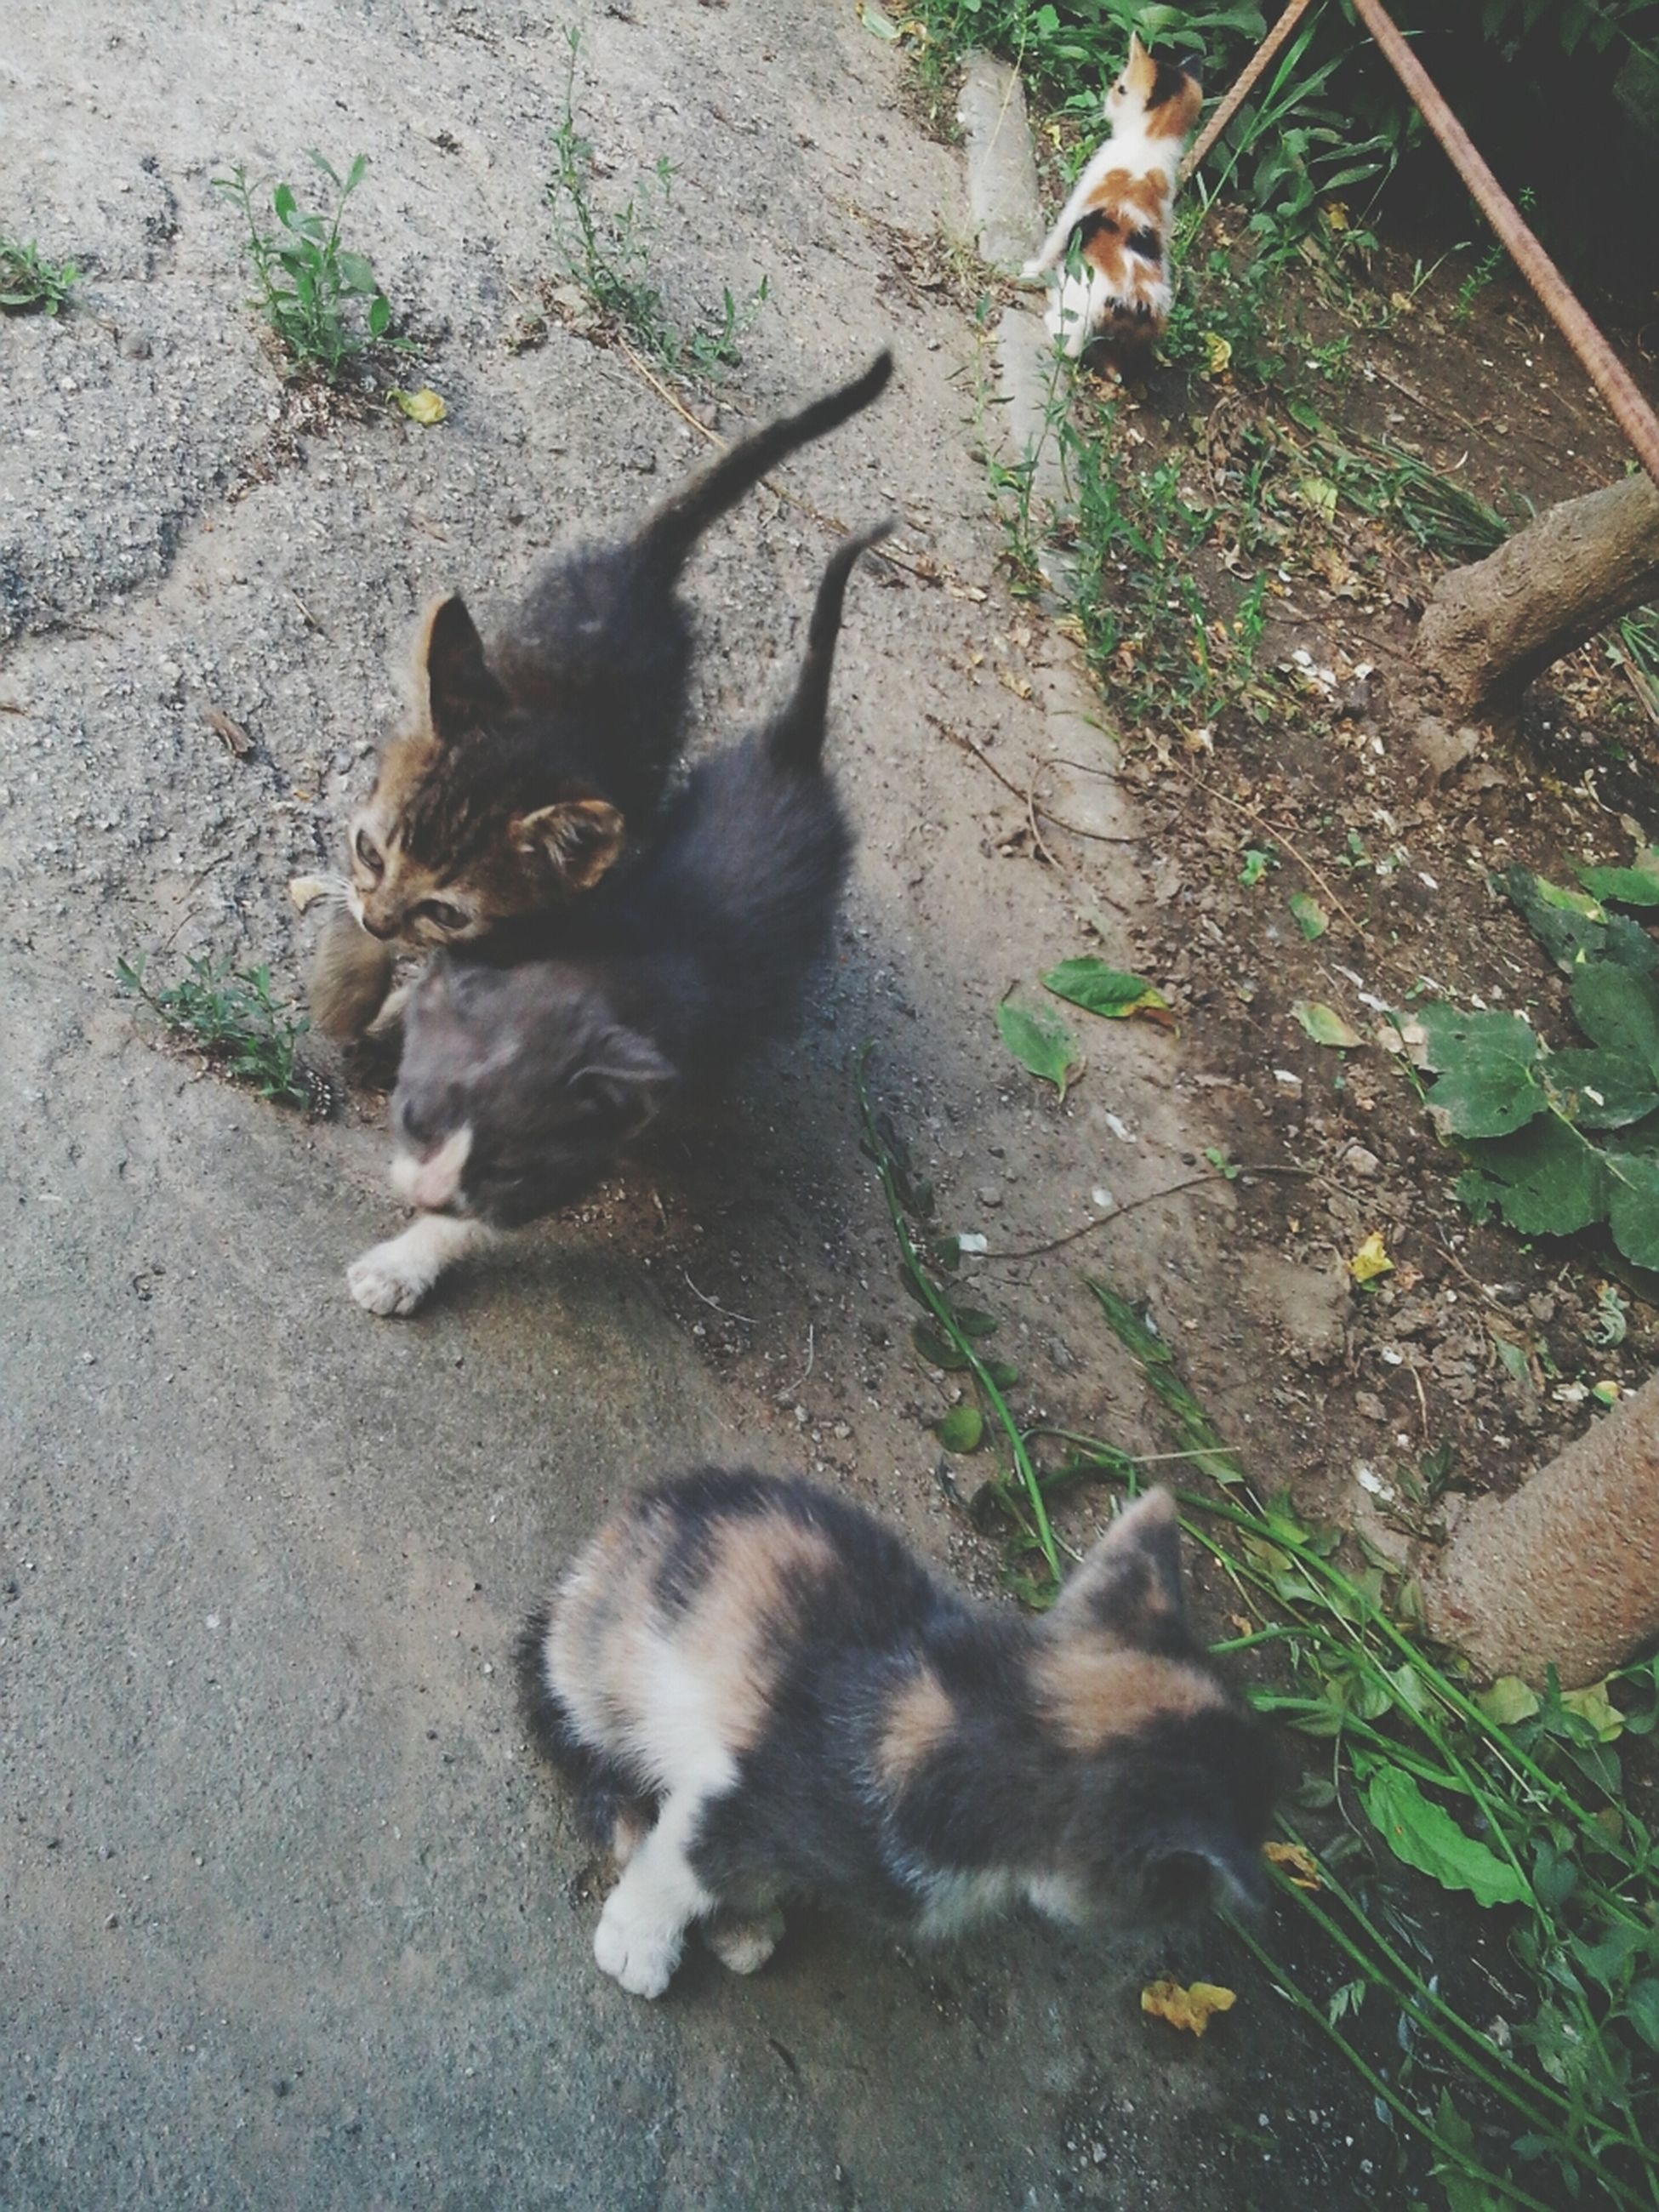 animal themes, pets, domestic animals, mammal, one animal, domestic cat, cat, high angle view, dog, feline, stray animal, sitting, relaxation, full length, plant, outdoors, day, whisker, looking at camera, street